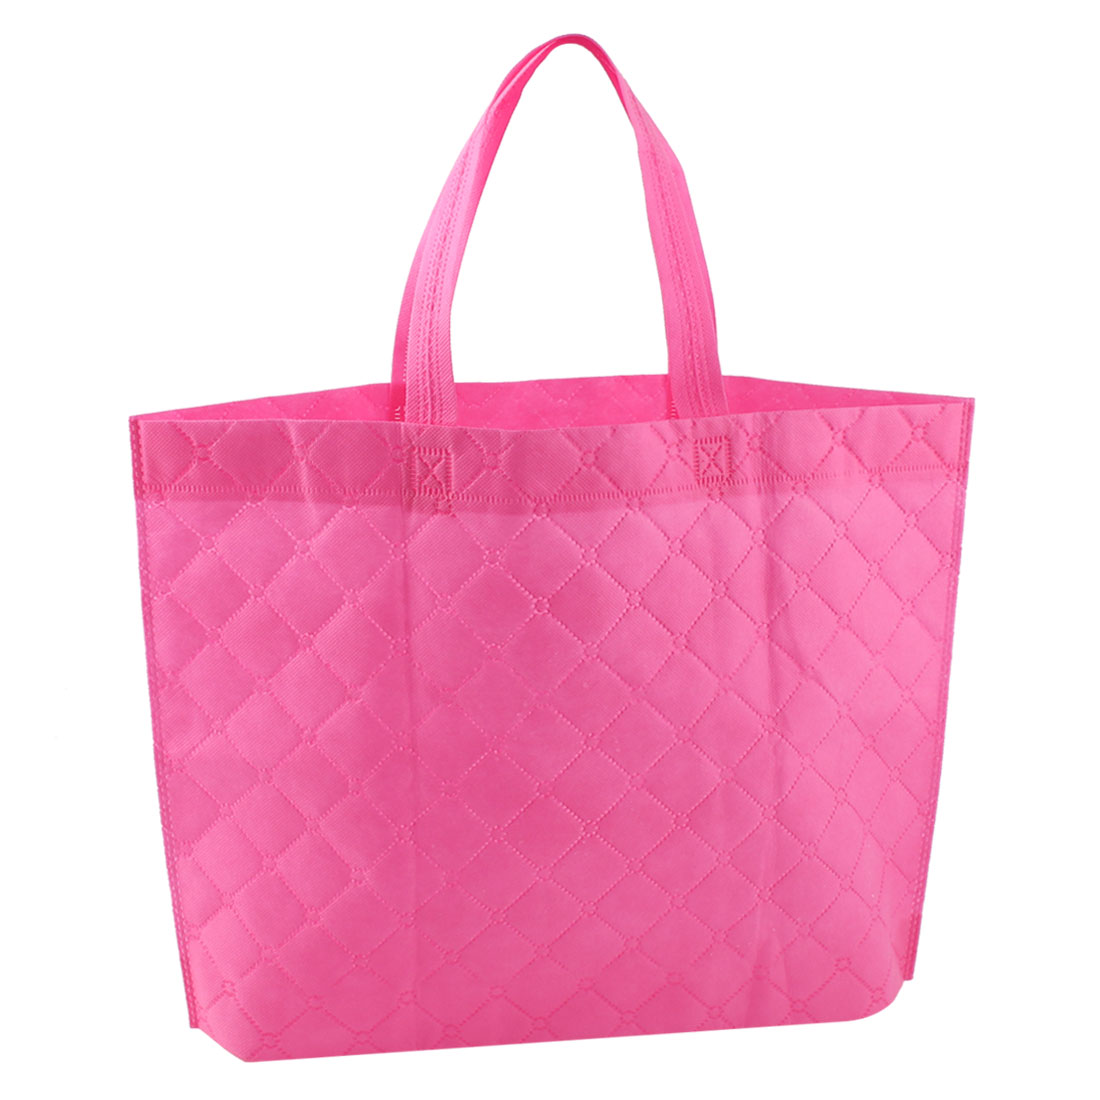 "16.9"" Length Non-Woven Enviromentally Pink Shopping Bag for Saving Resources"